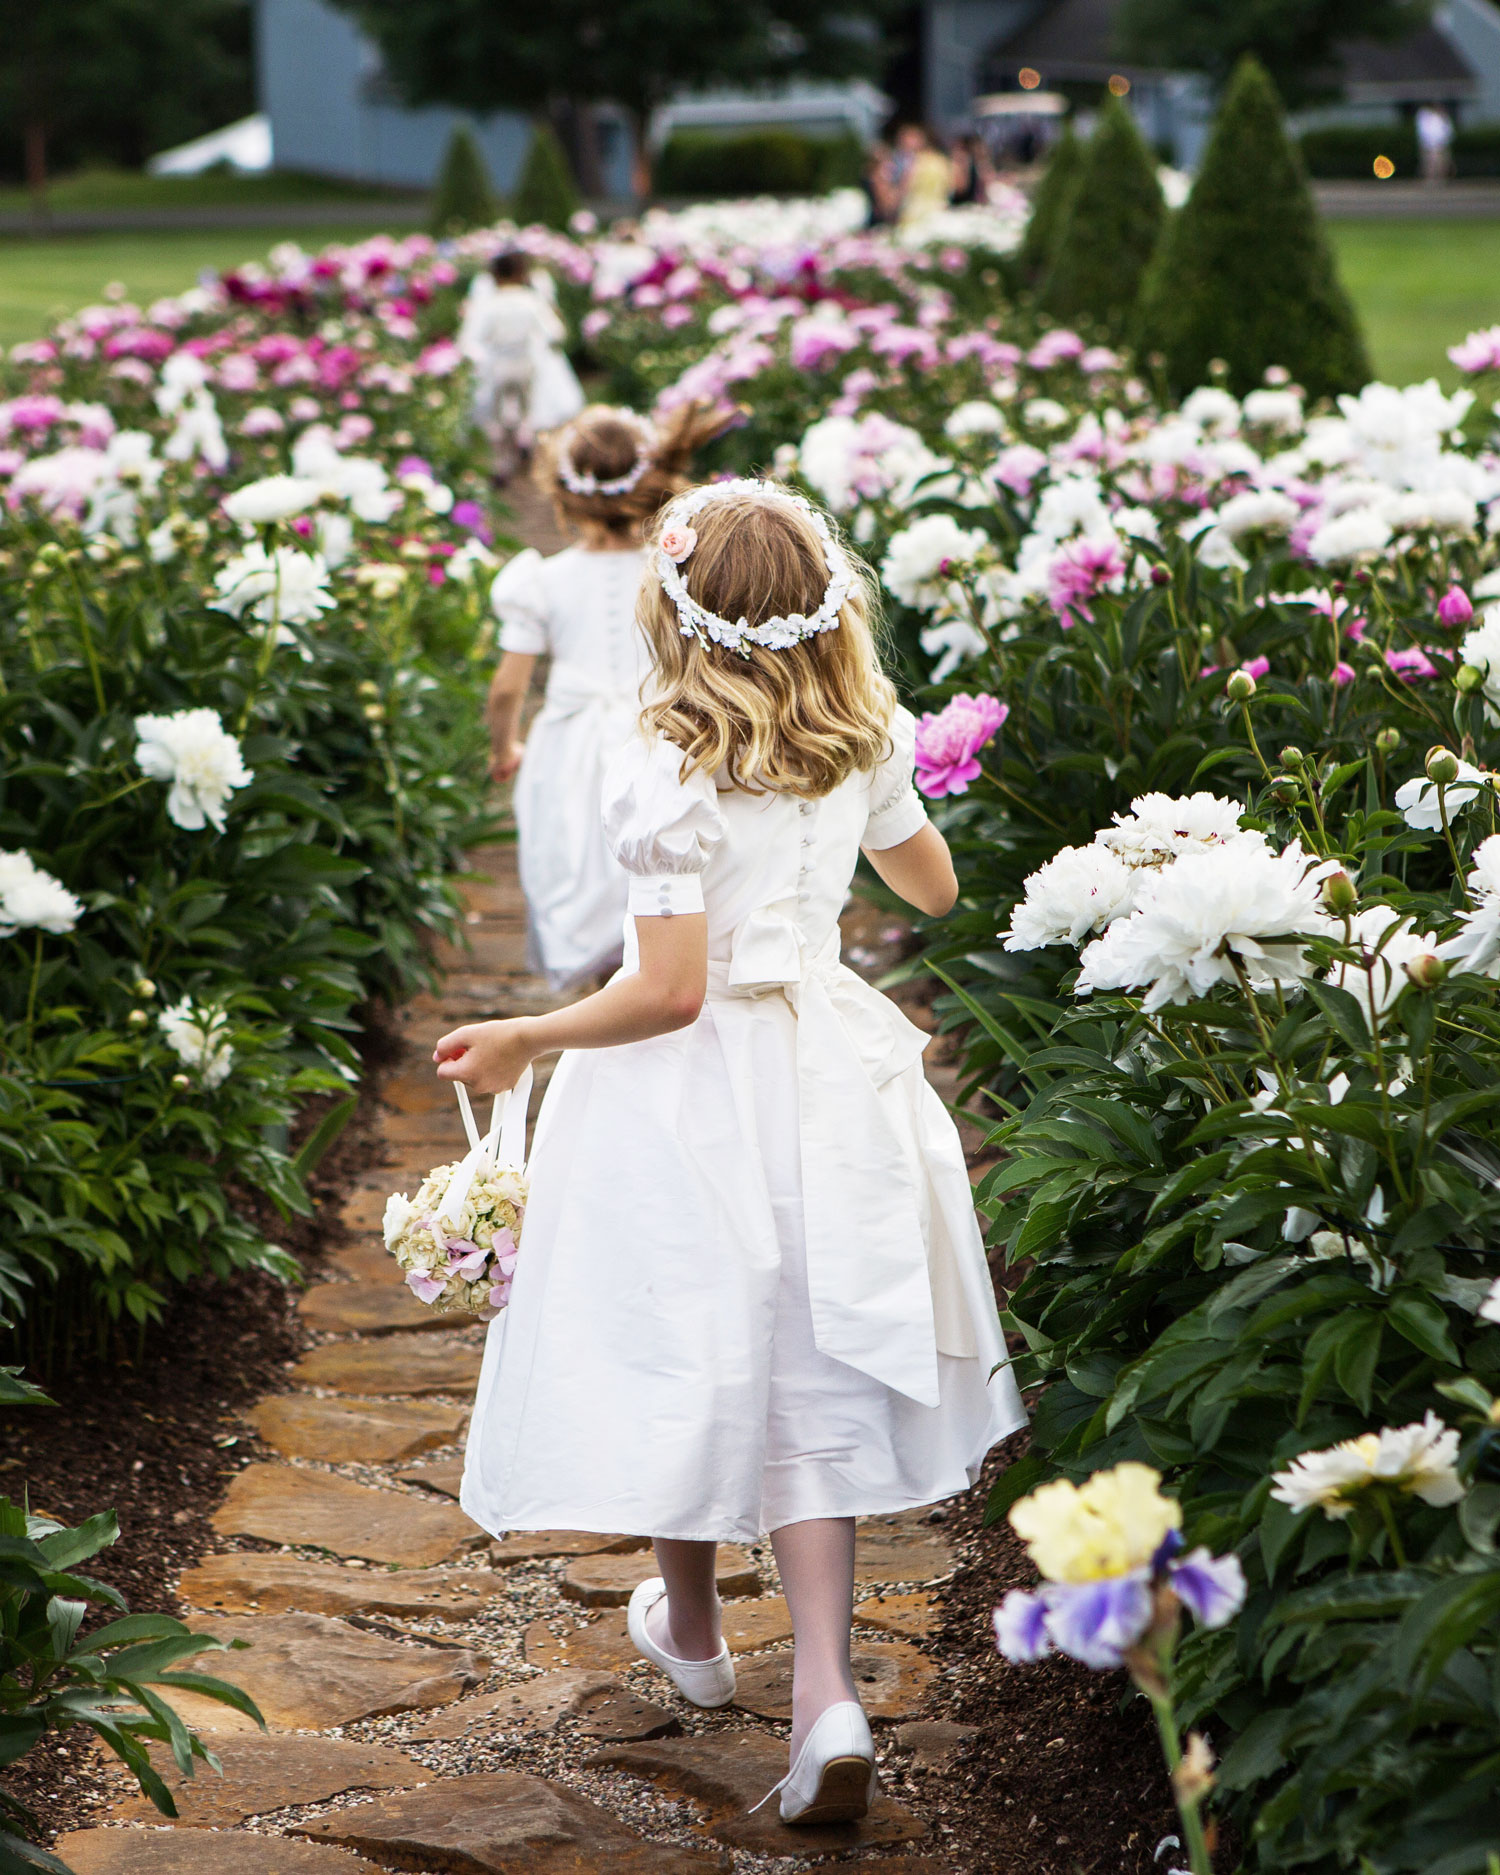 emily-matthew-wedding-flowergirls-0103-s112720-0316.jpg